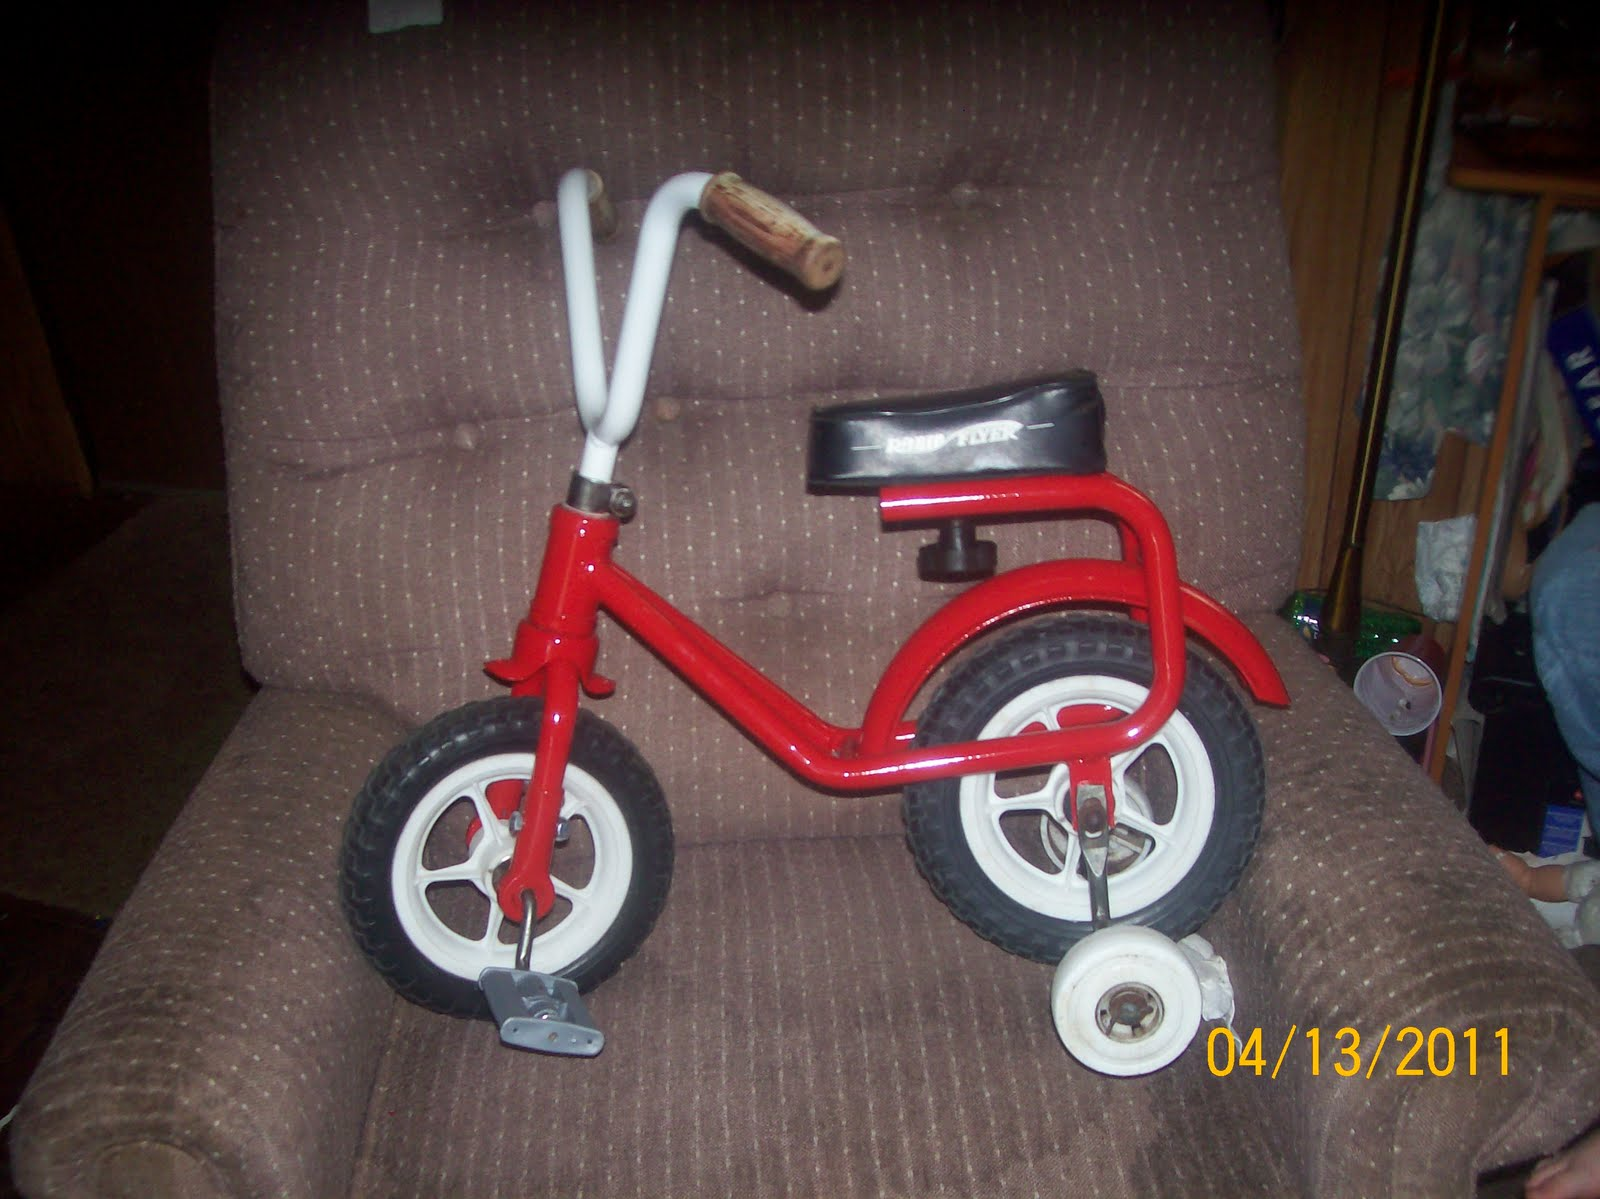 Southern Mom of 4: Radio Flyer Bicycle